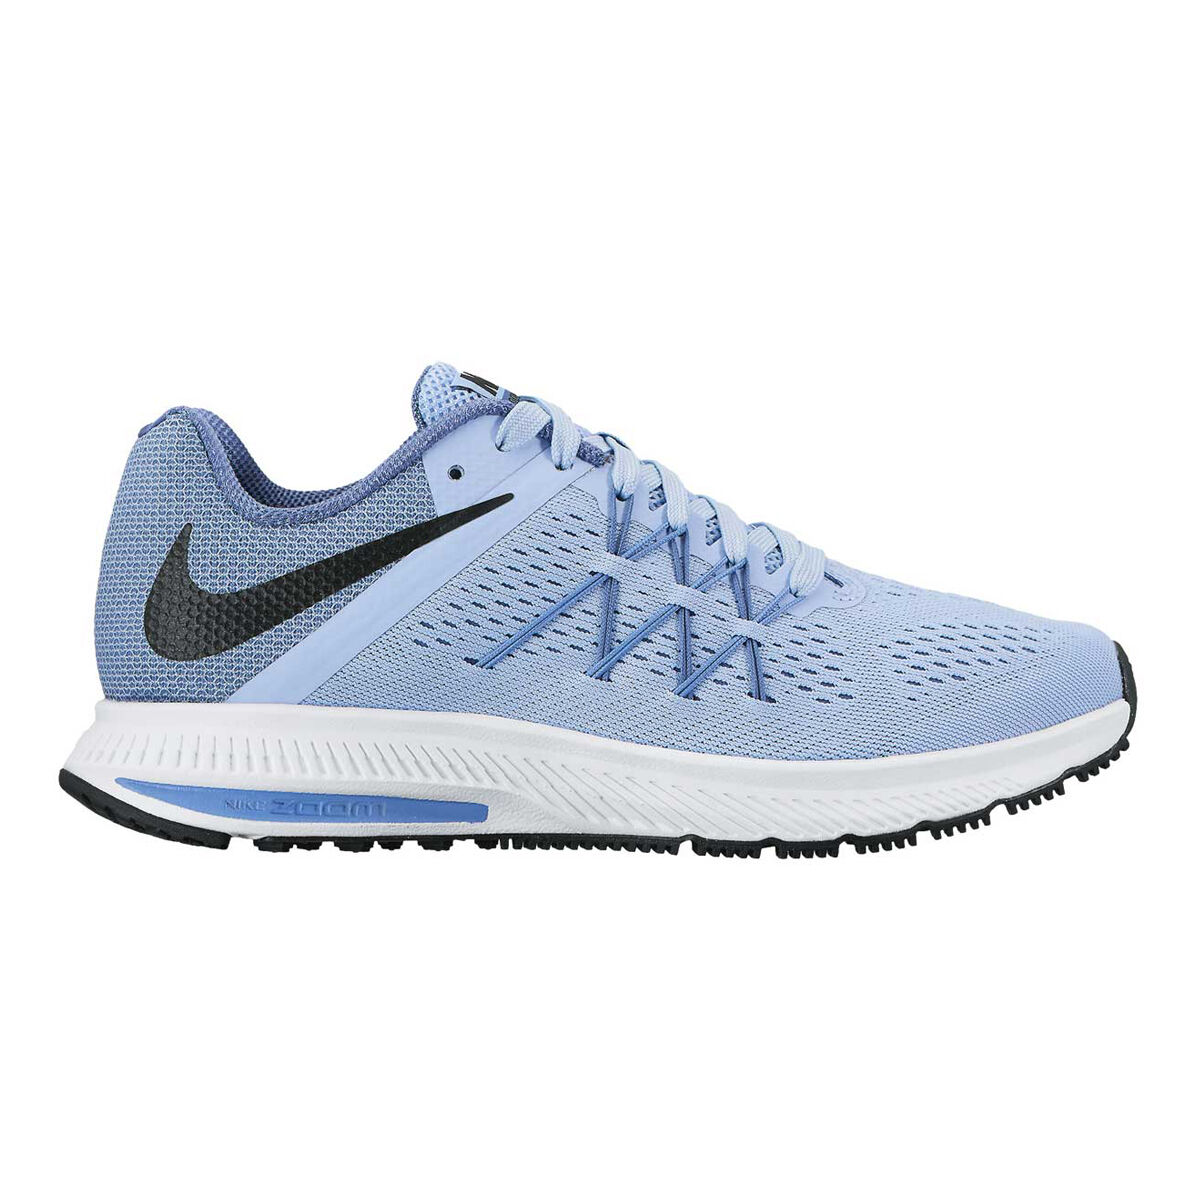 10d13a481c5 ... new zealand nike zoom winflo 3 womens running shoes blue white us 8 blue  white e30cd